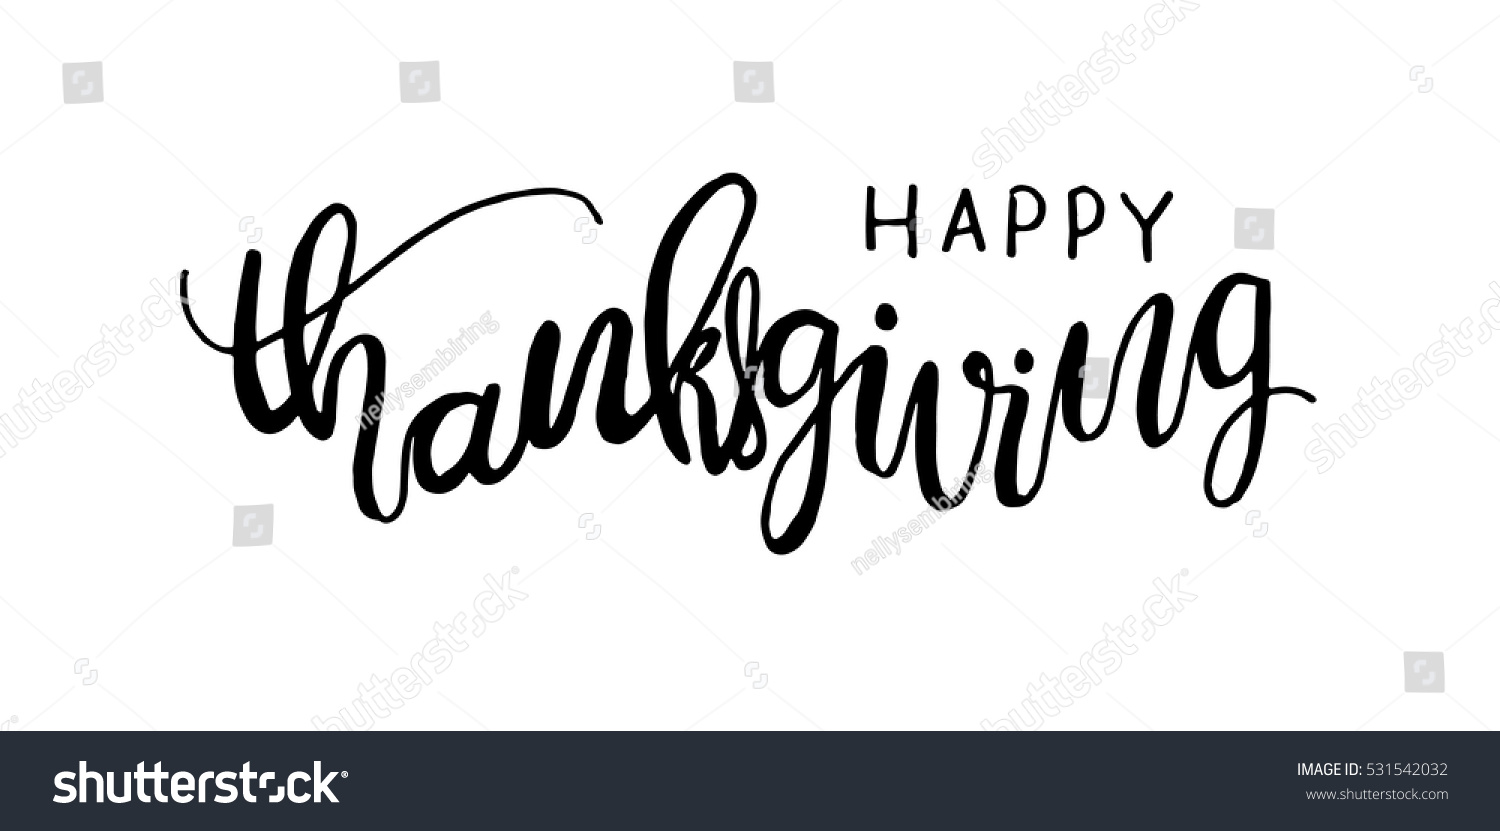 Happy thanksgiving hand drawn celebration quote stock